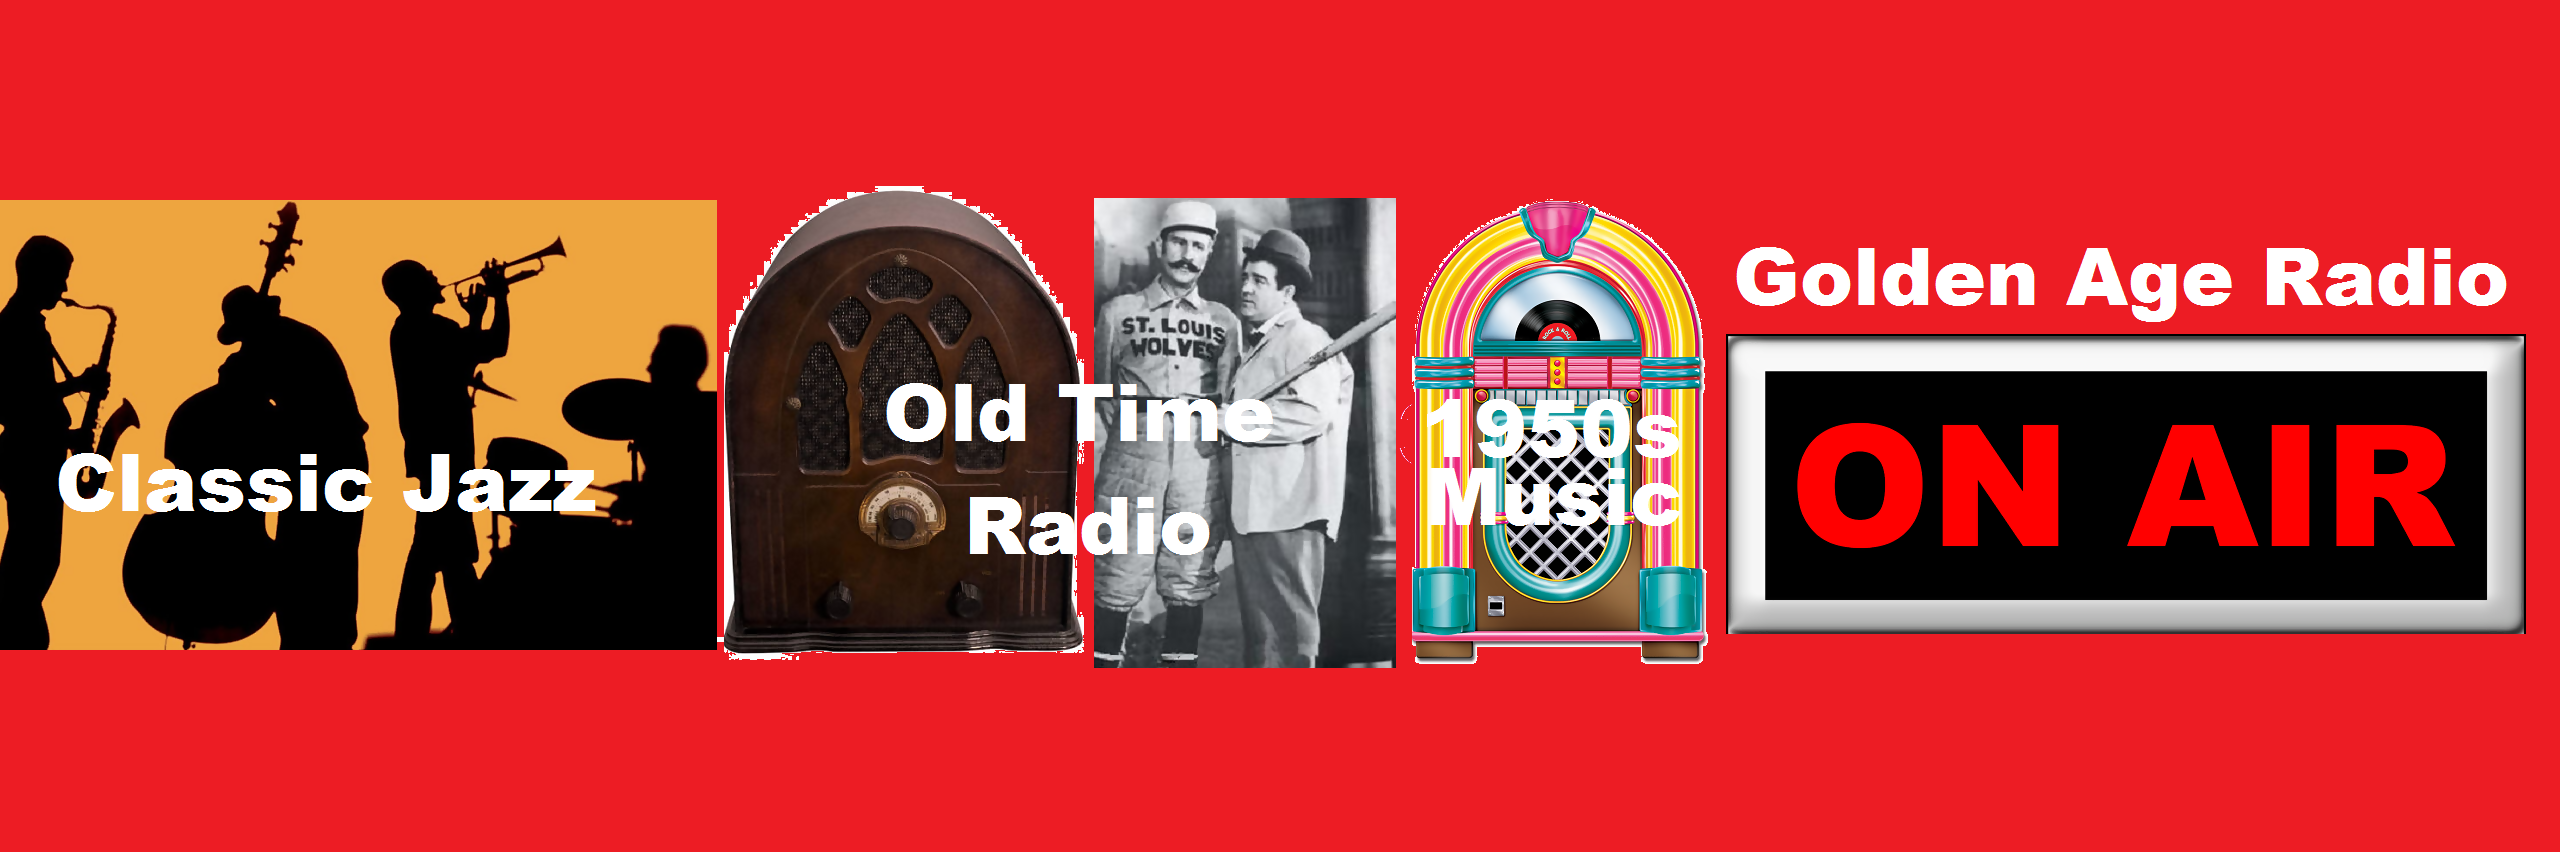 Golden Age Radio 1680-AM